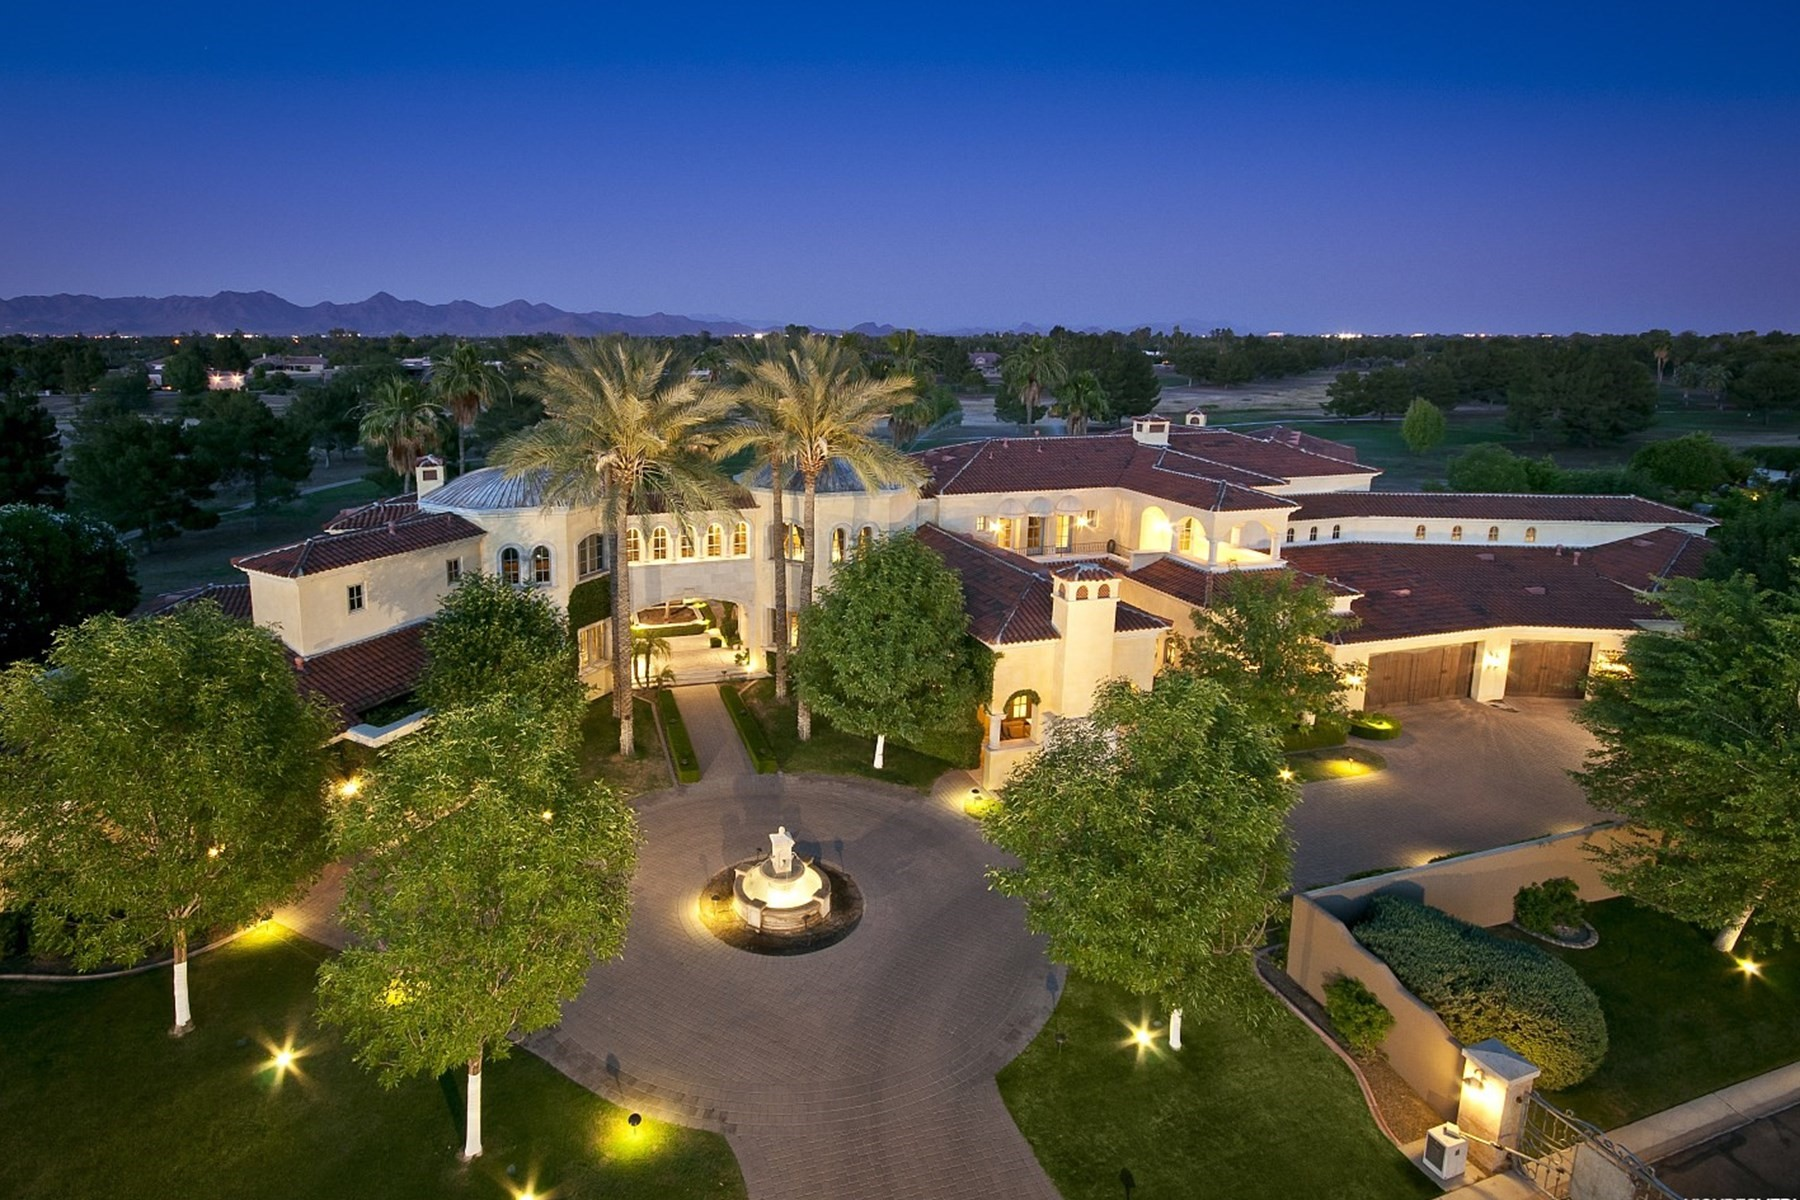 Single Family Home for Sale at Classic Mediterranean Design Grand Estate on the golf course. 9403 N 55 ST Paradise Valley, Arizona, 85253 United States